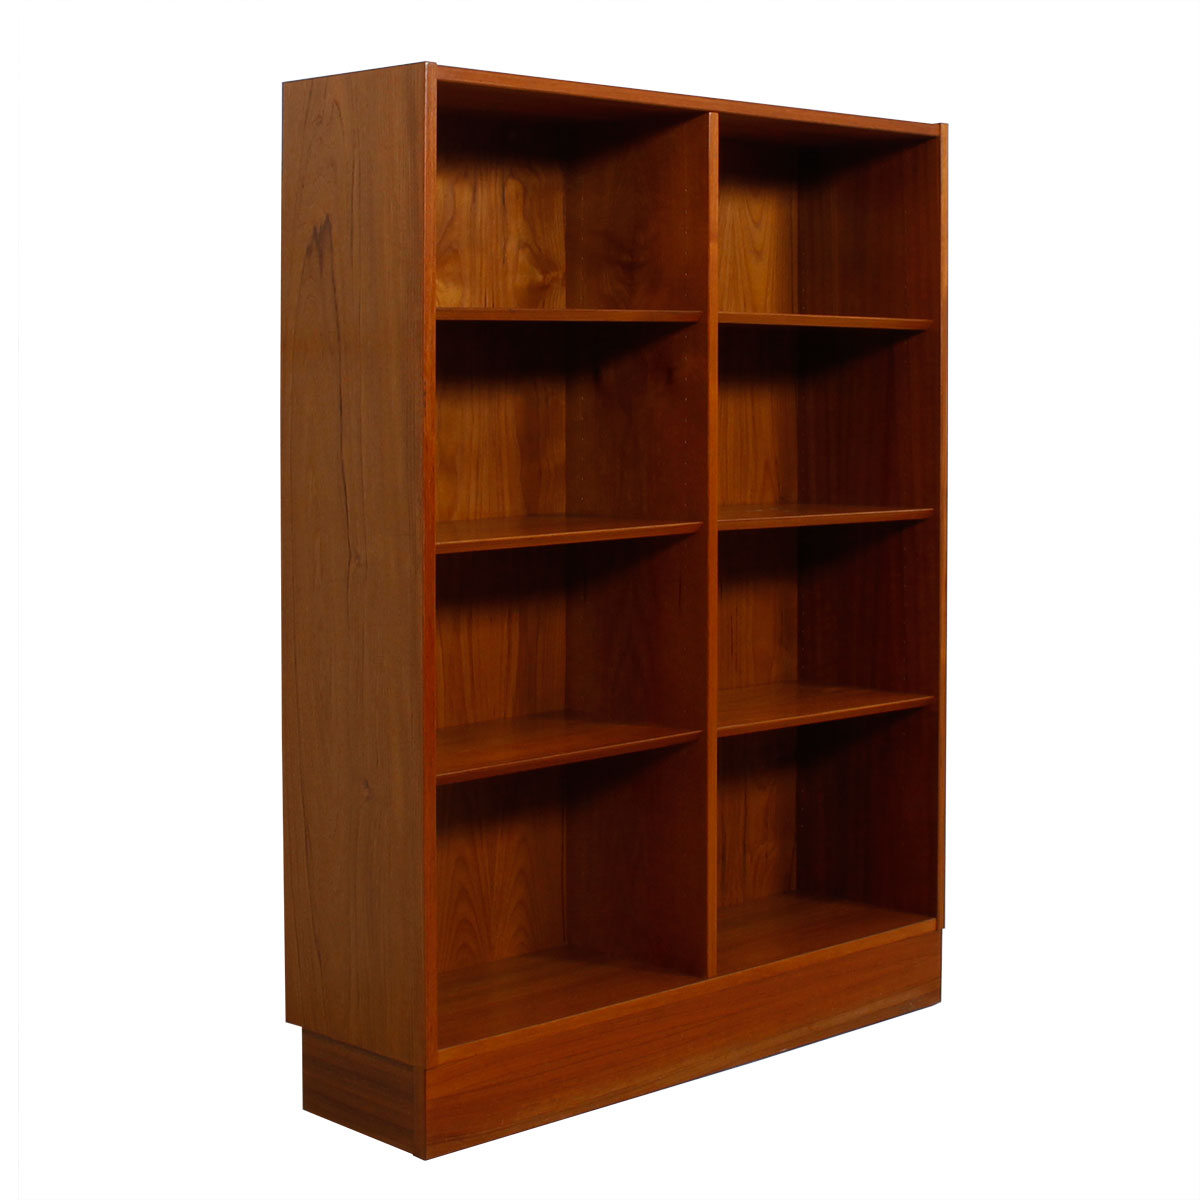 56″ Tall Compact Danish Modern Teak Bookcase